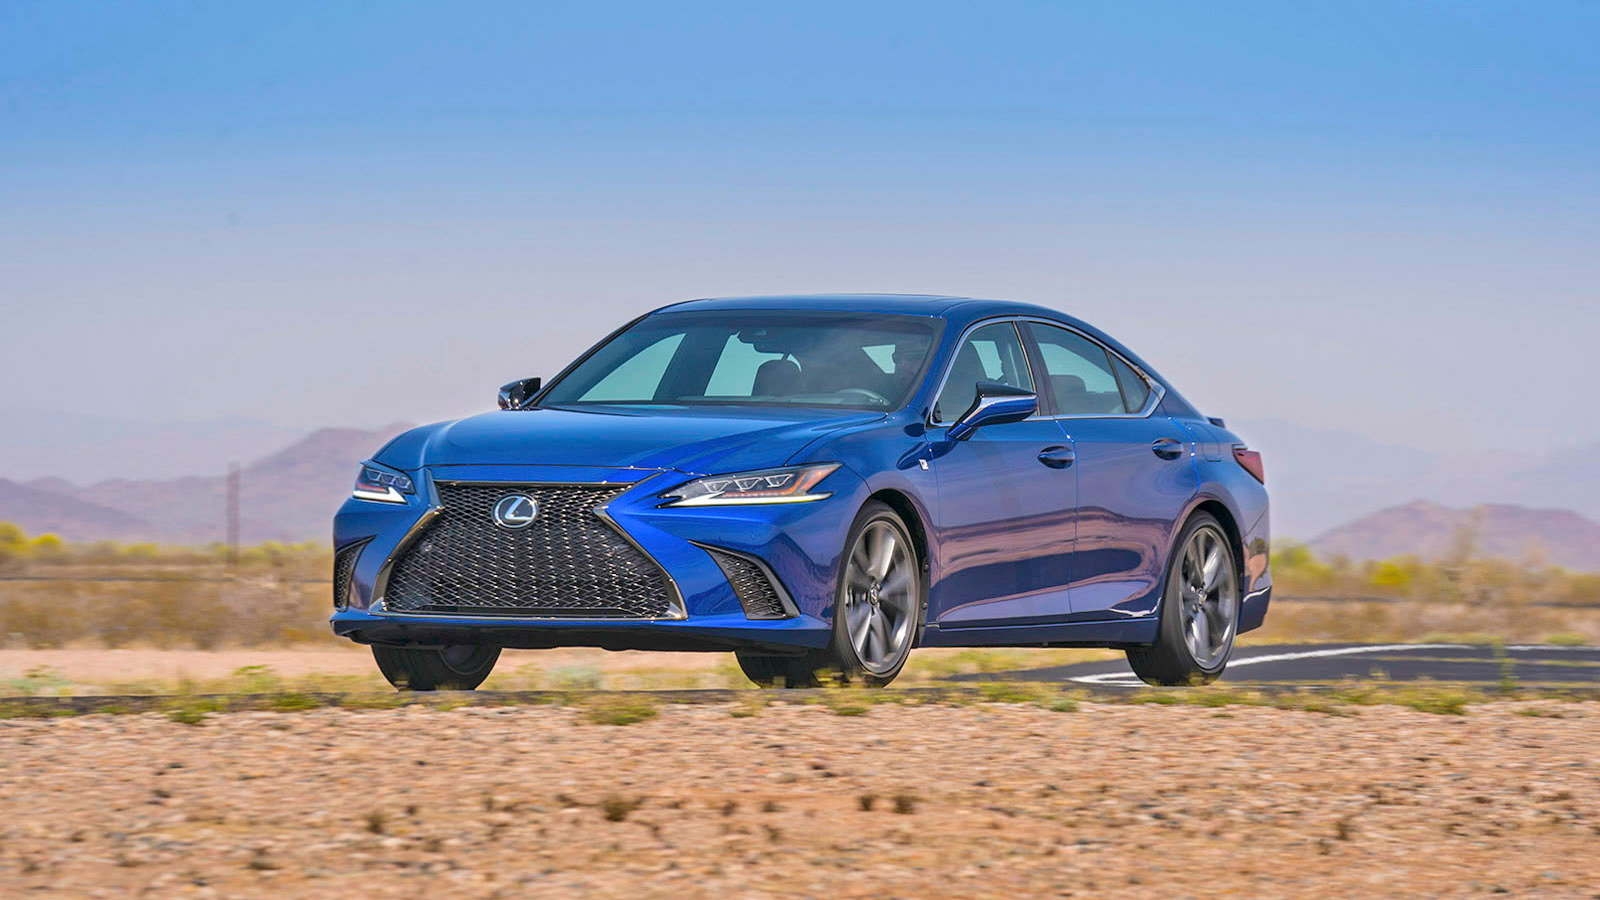 Why Lexus Won't Offer a Sub-$30,000 Vehicle